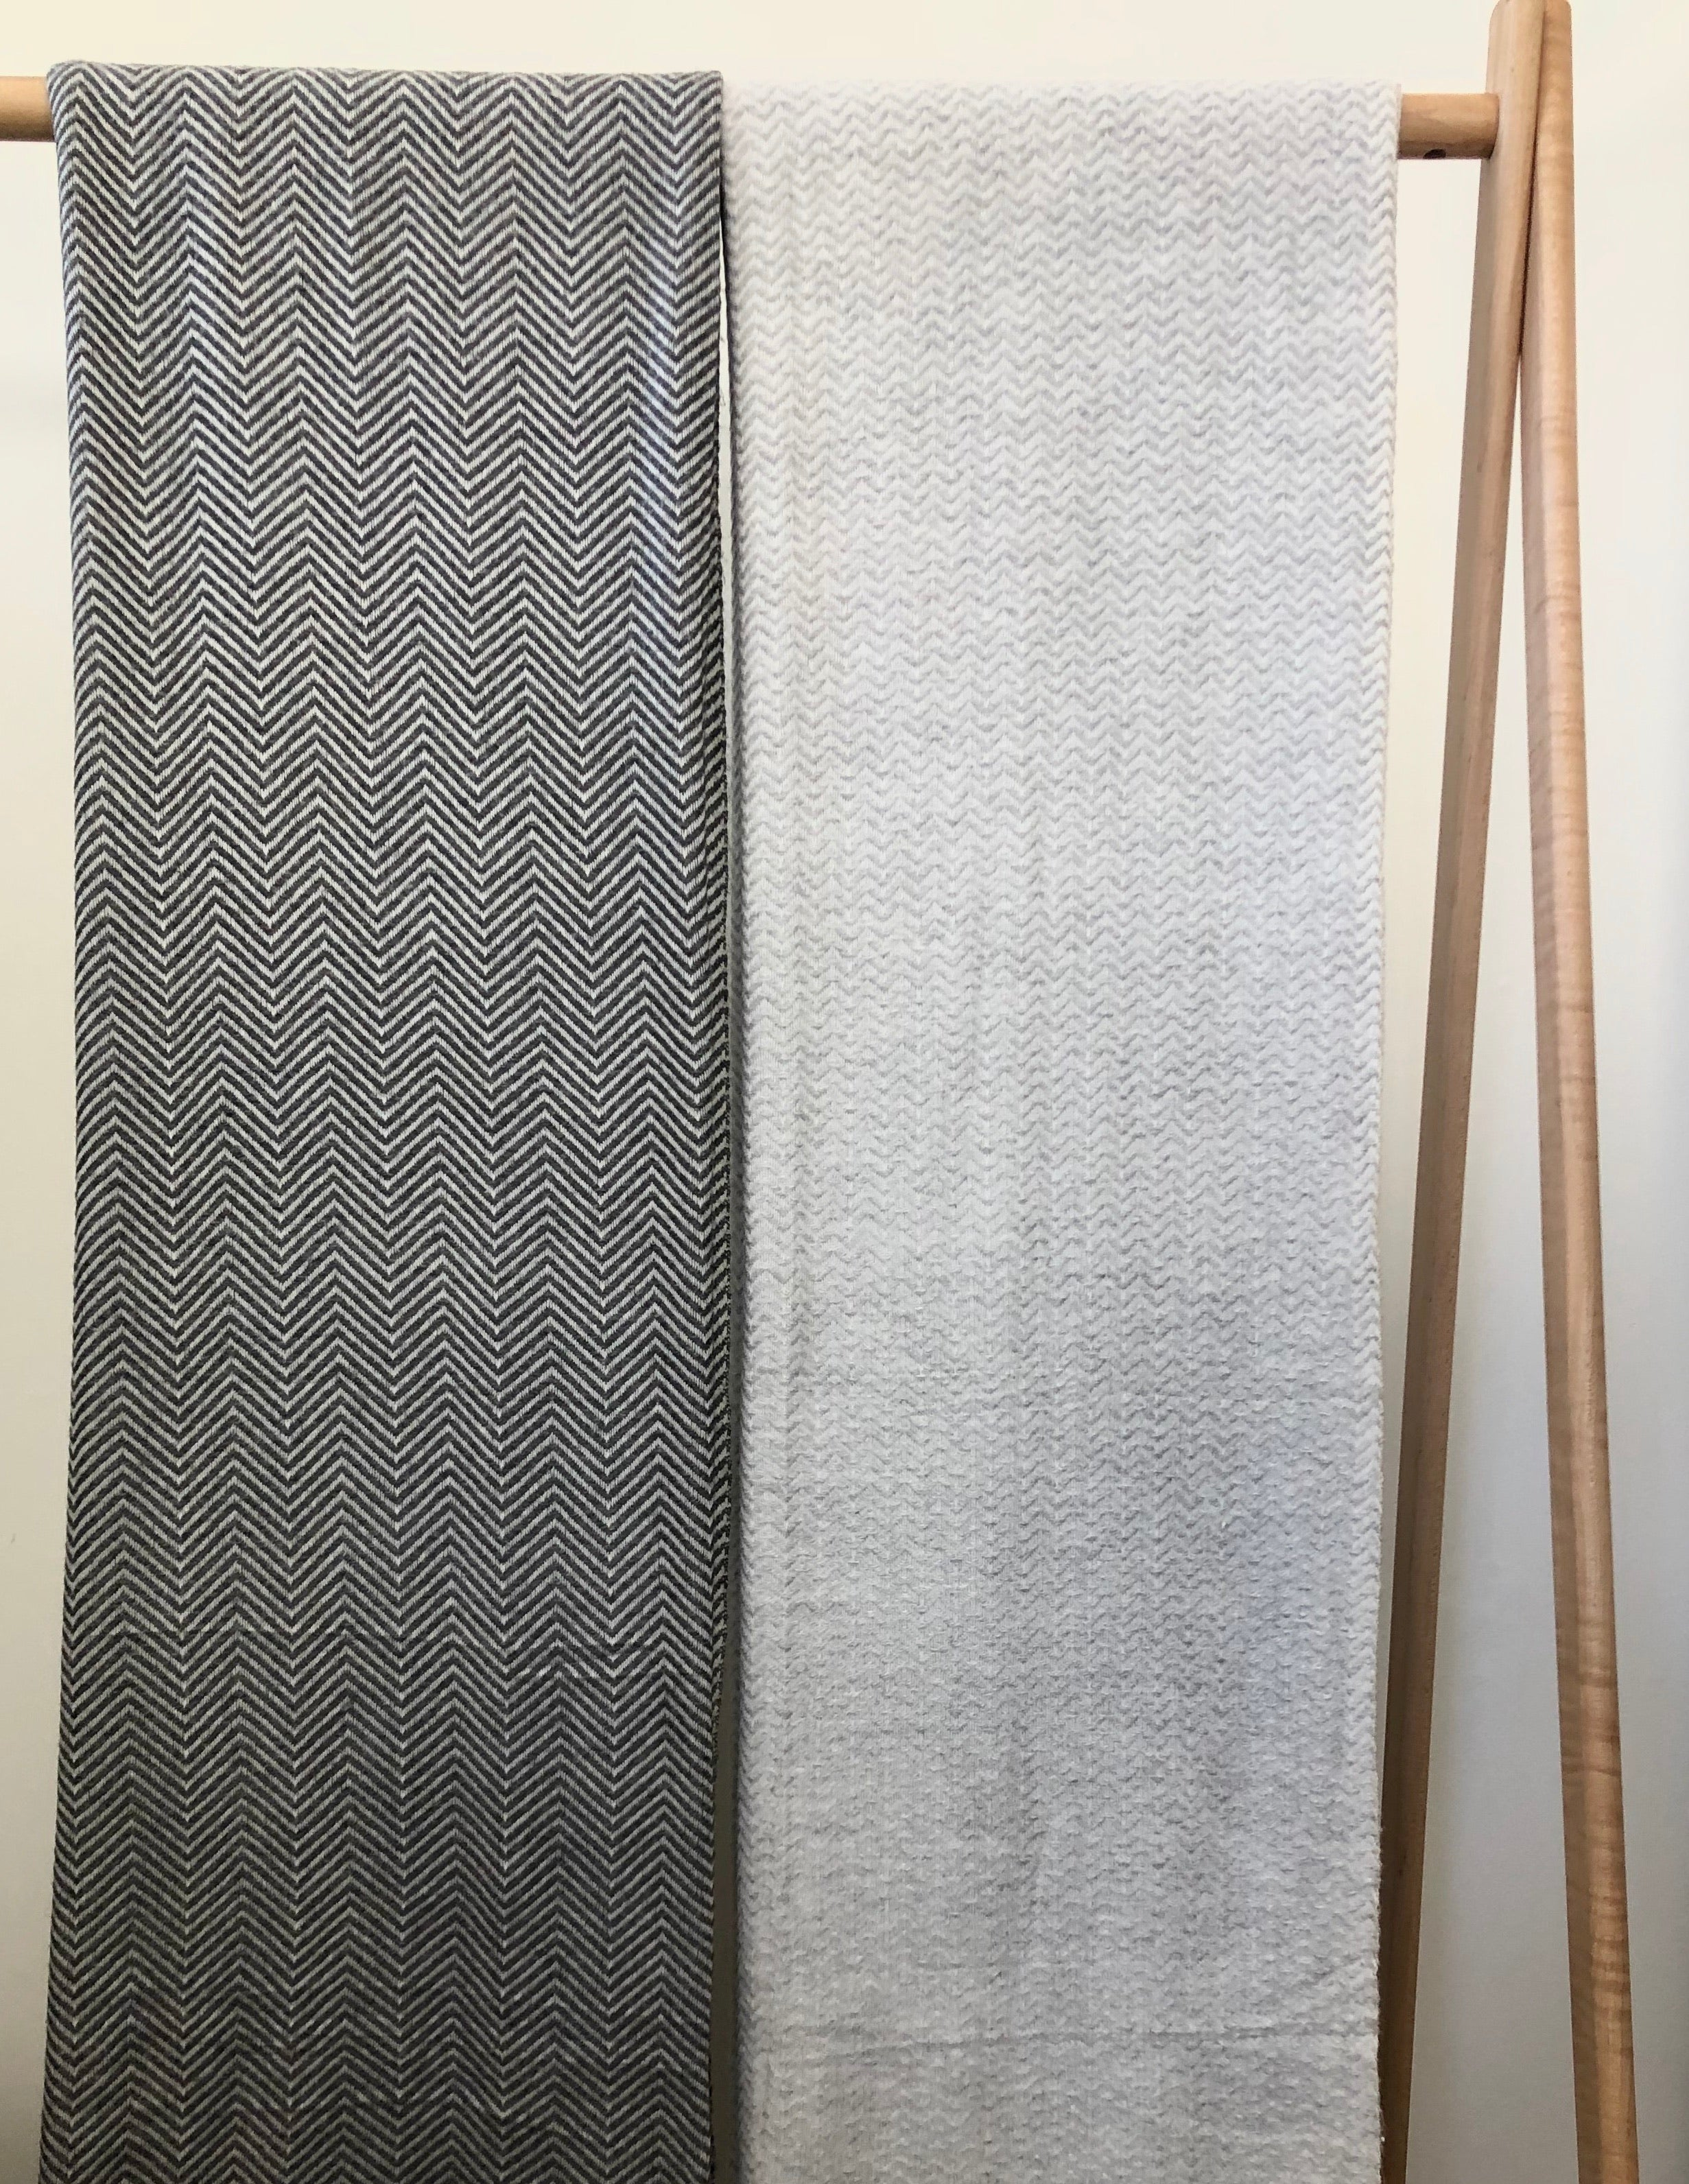 Cashmere and Wool Blanket - Smoke Grey Herringbone